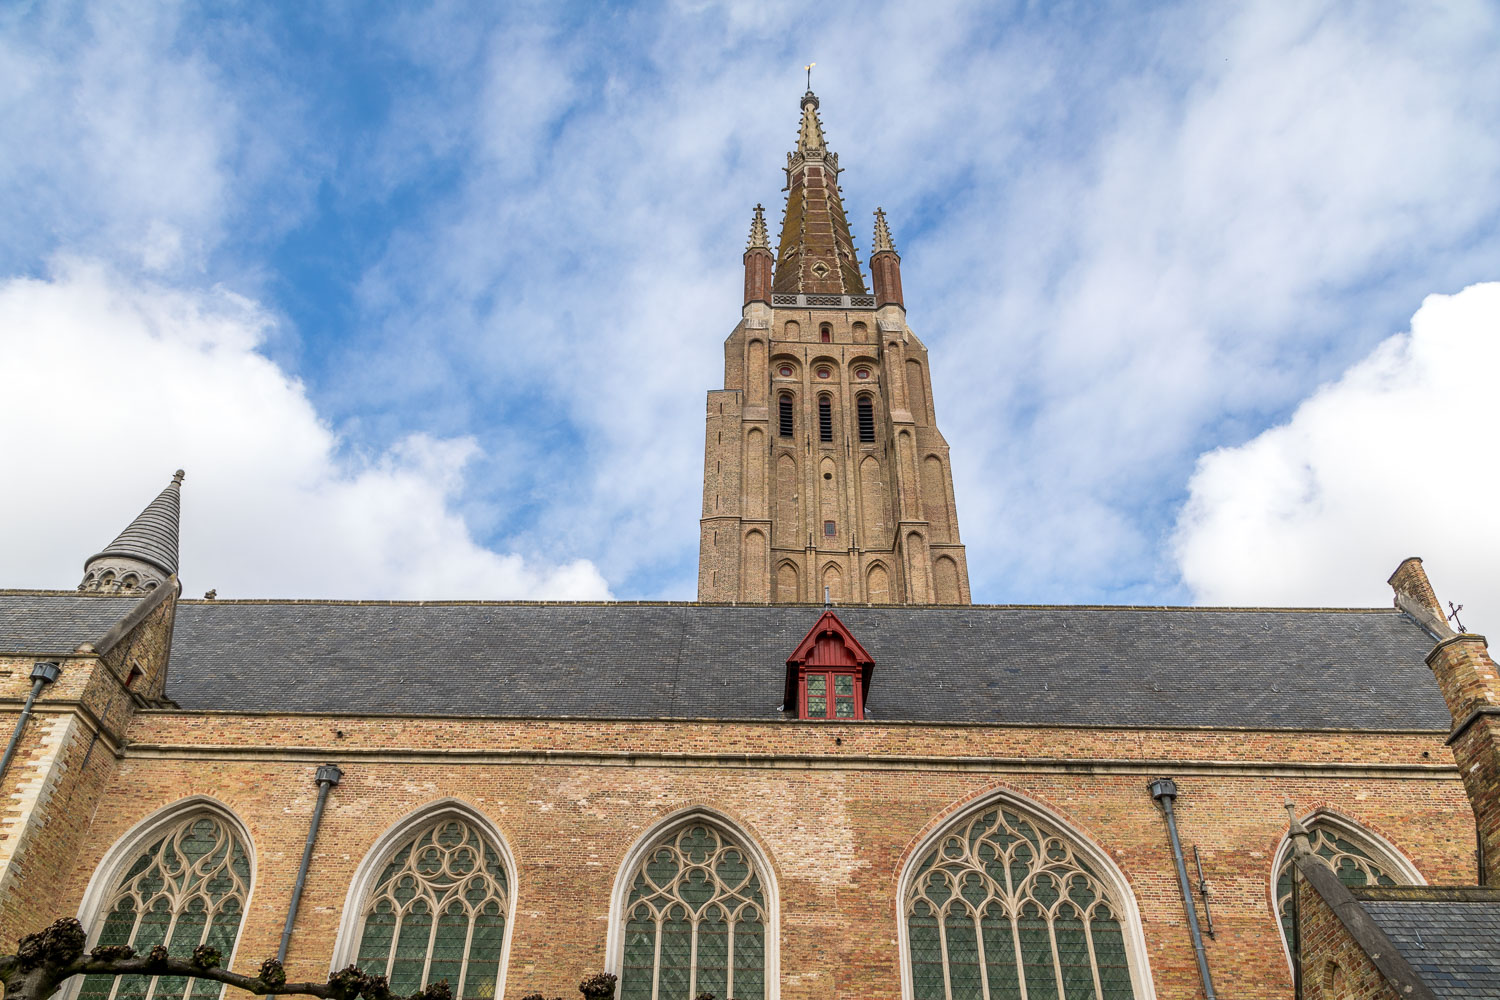 Onze-Lieve-Vrouwekerk, Museum of the Church of Our Lady, Bruges